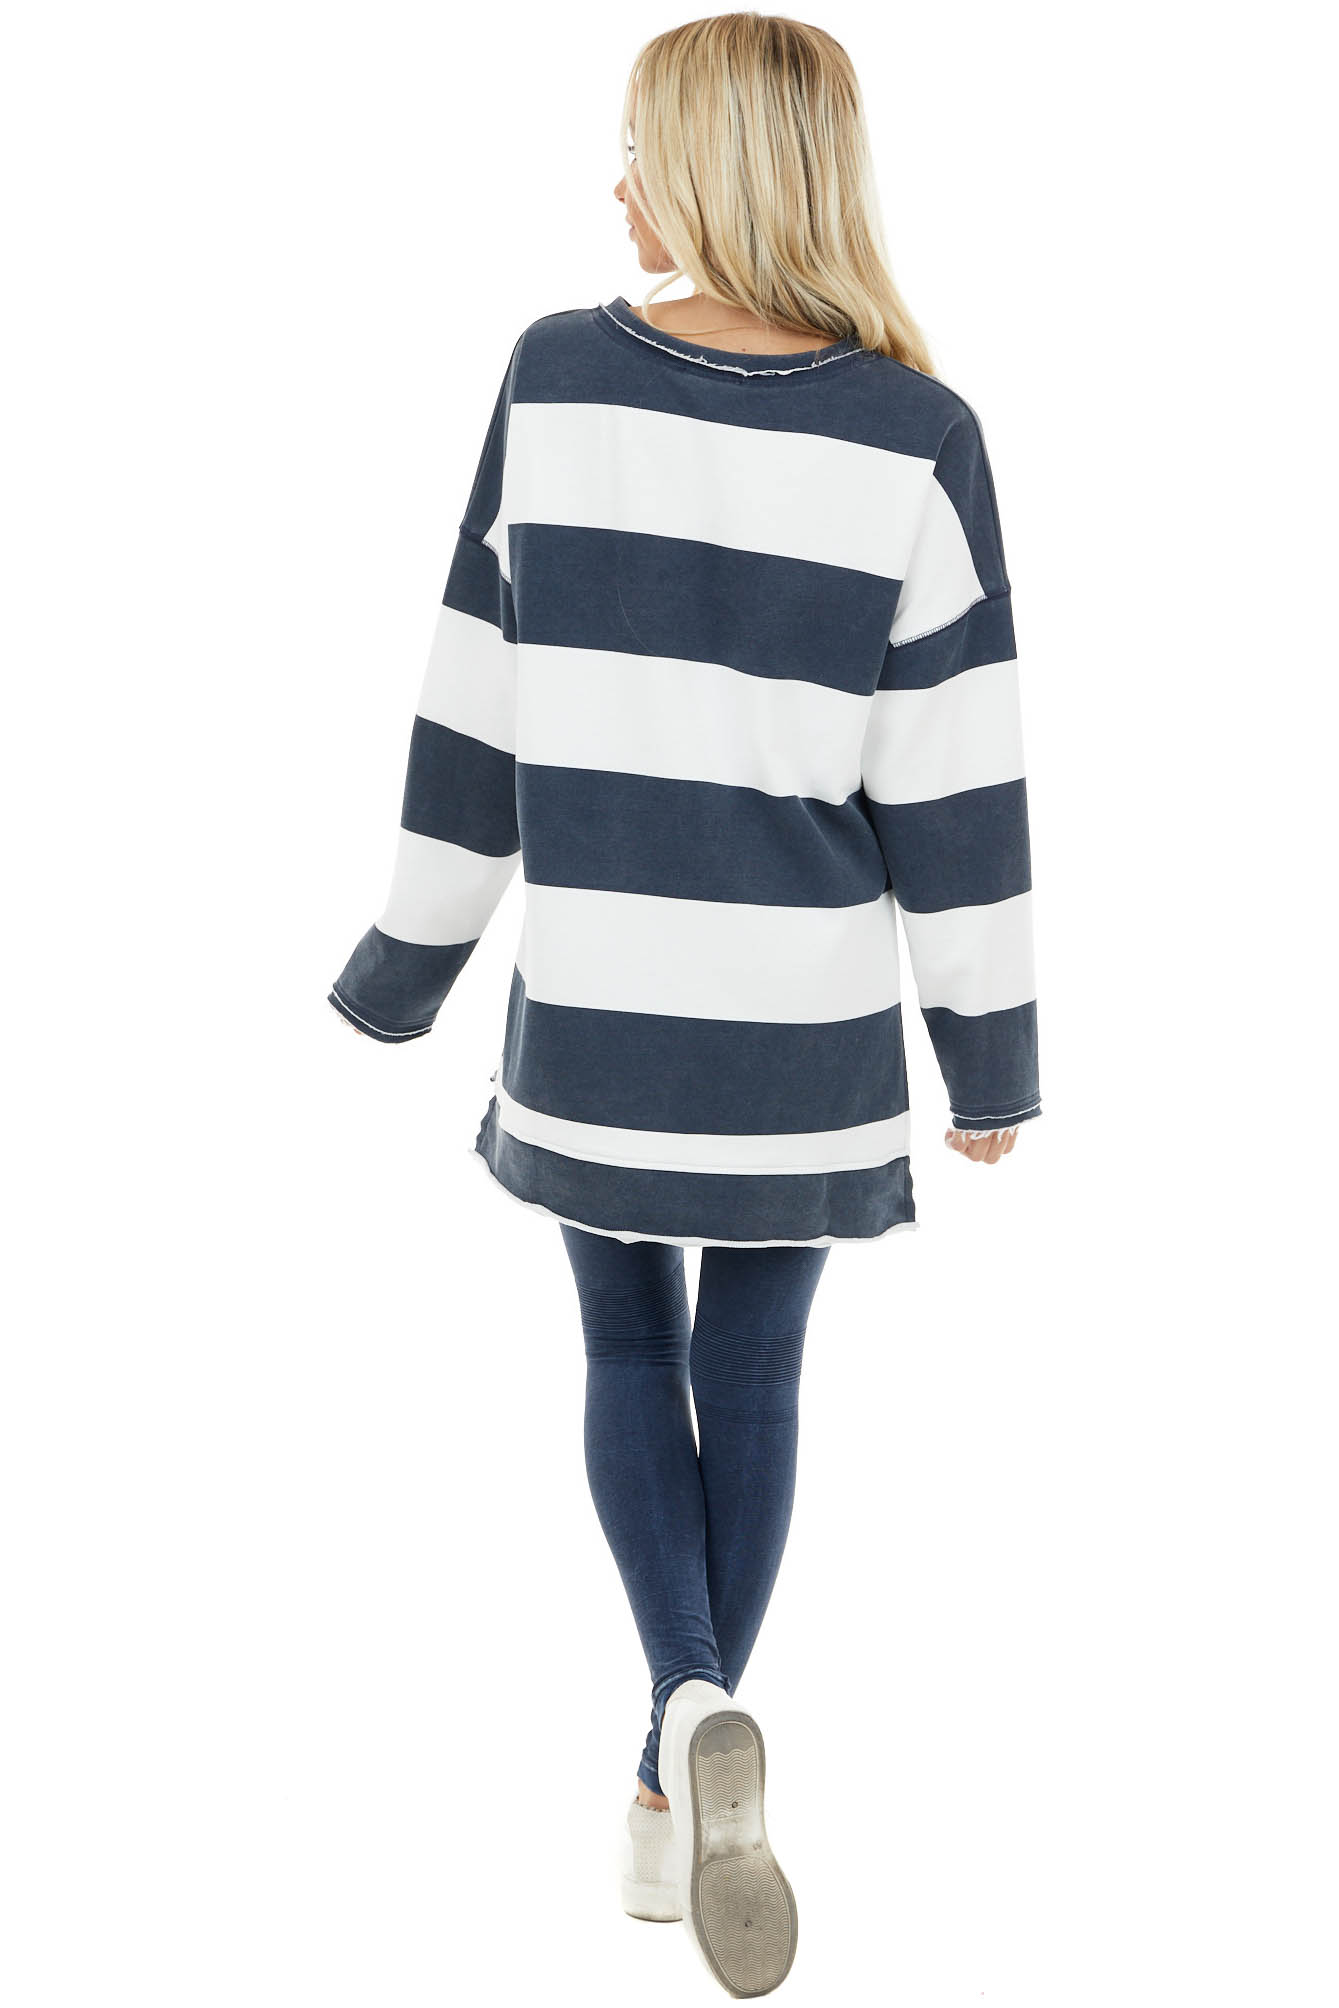 Vintage Navy and White Striped Print Long Sleeve Knit Top